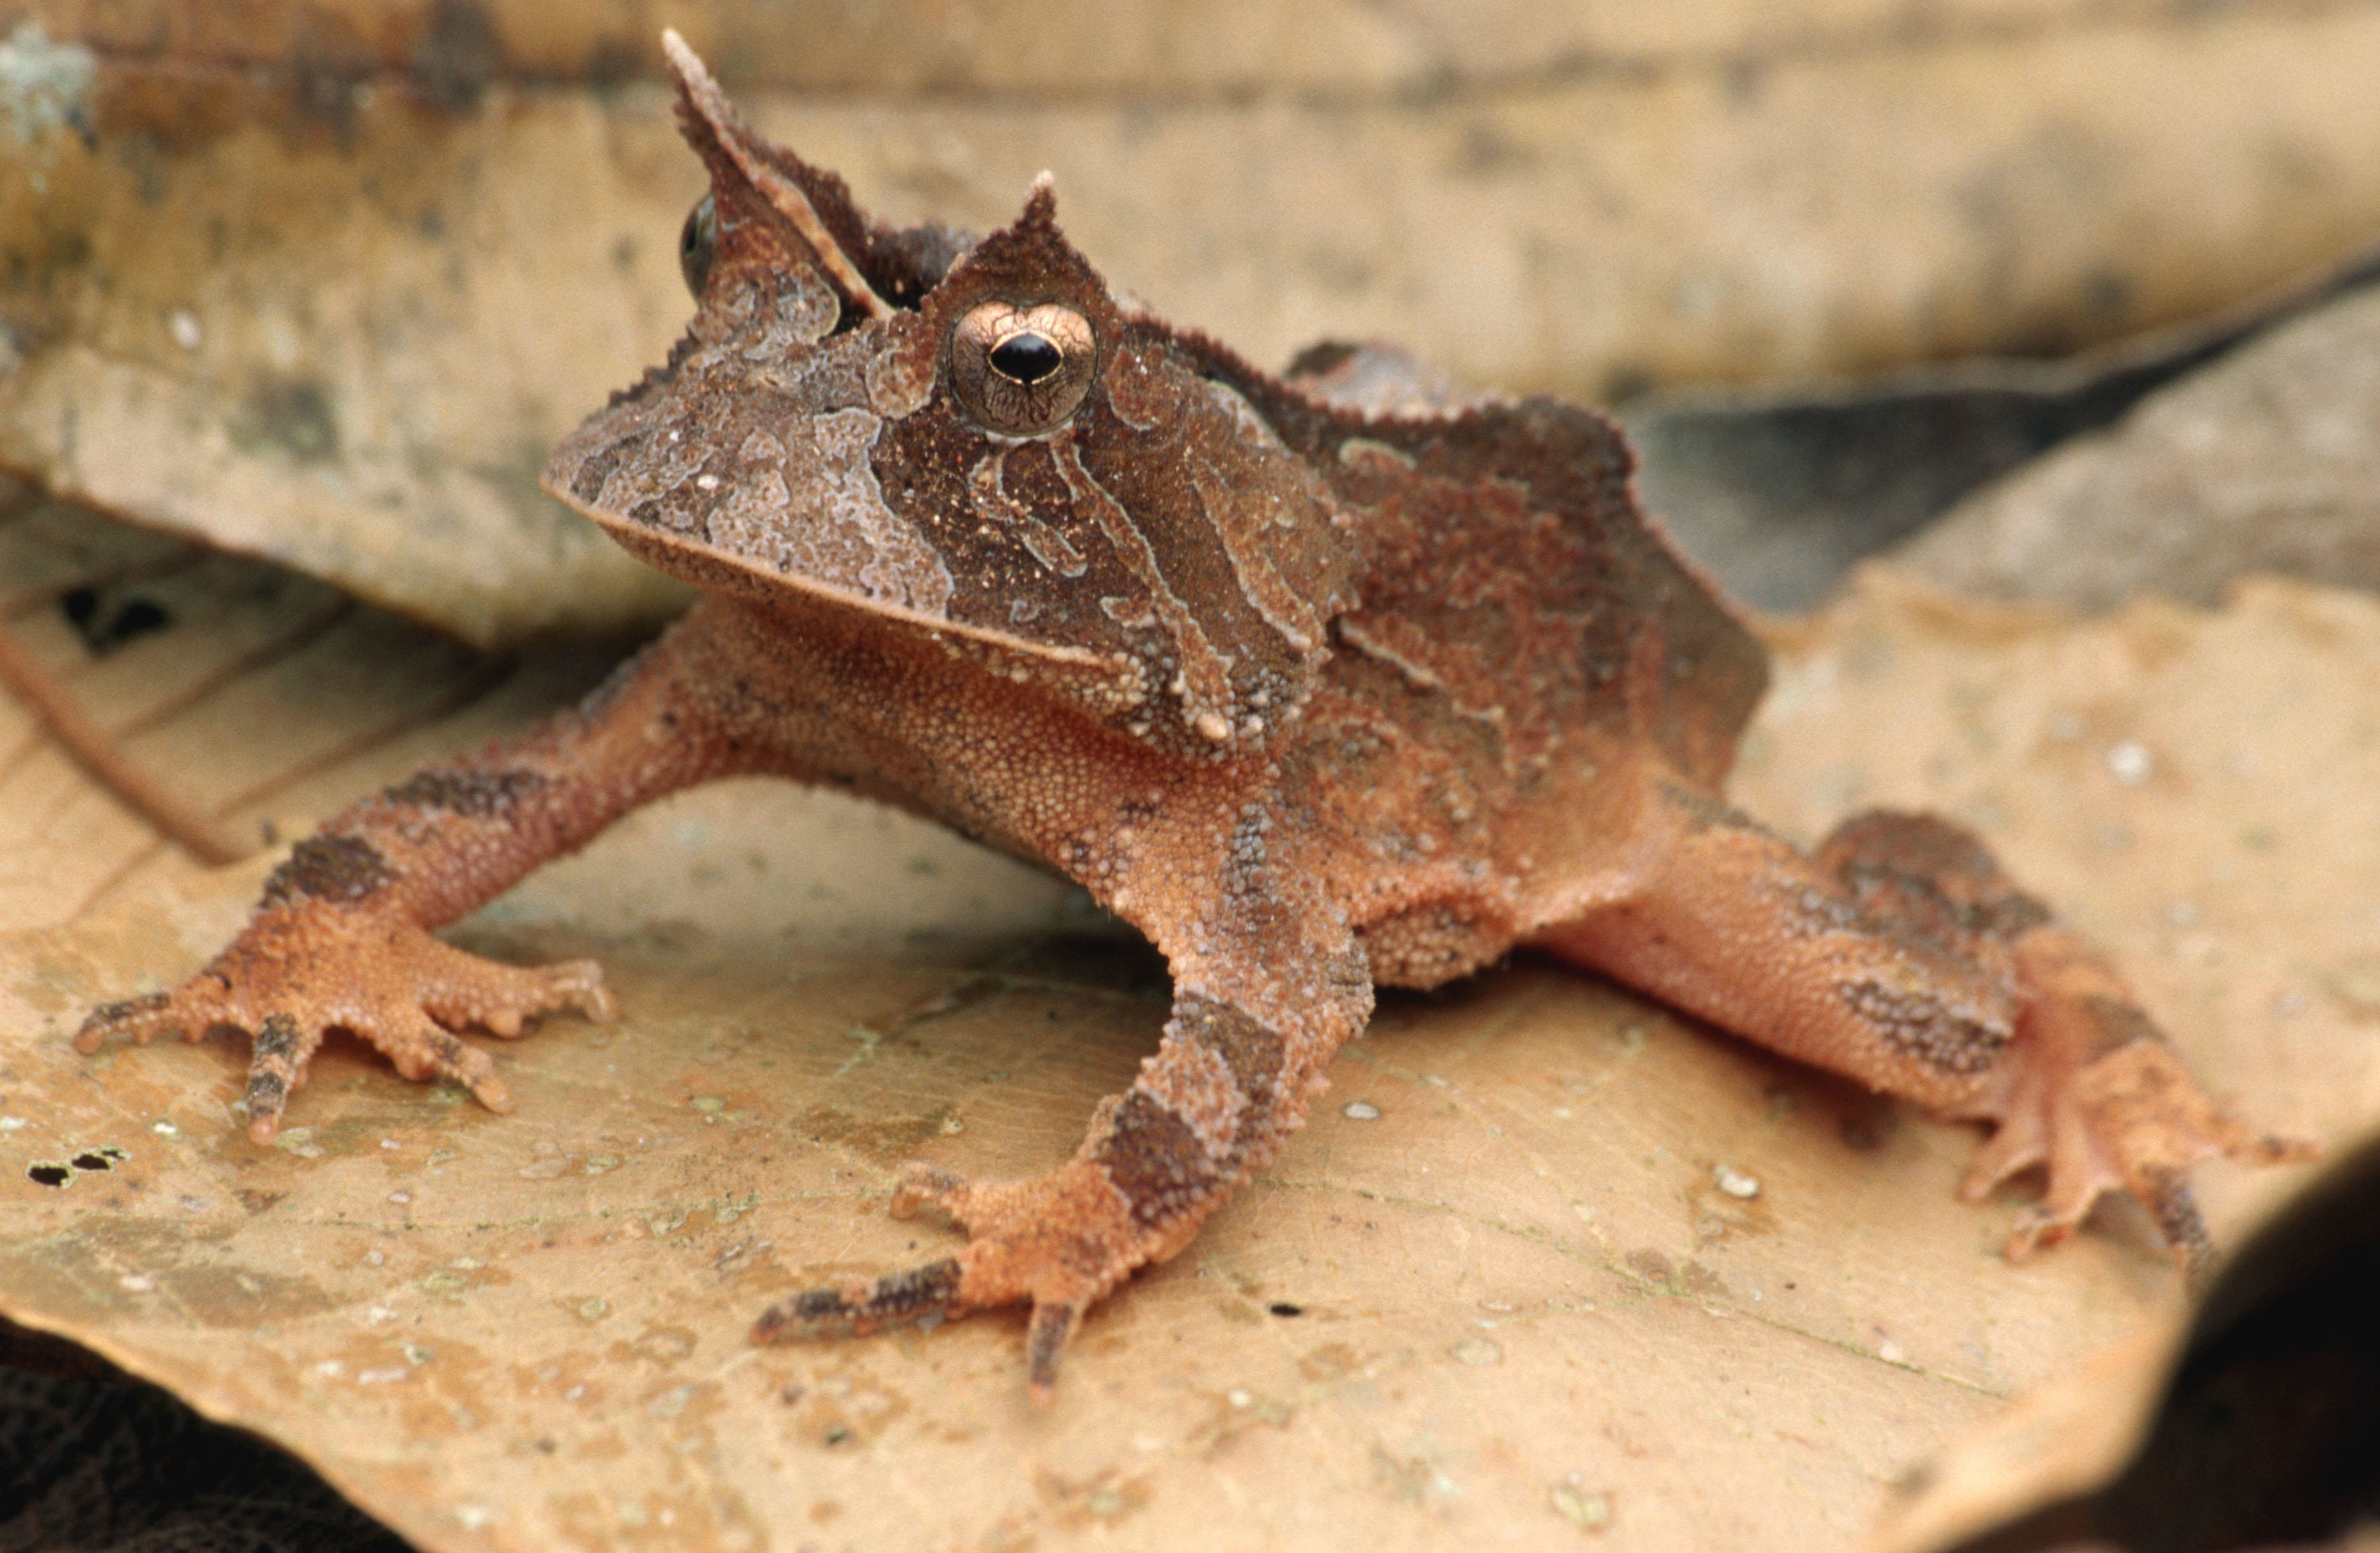 A frog with what looks like horns above each eye looking very leaf-like